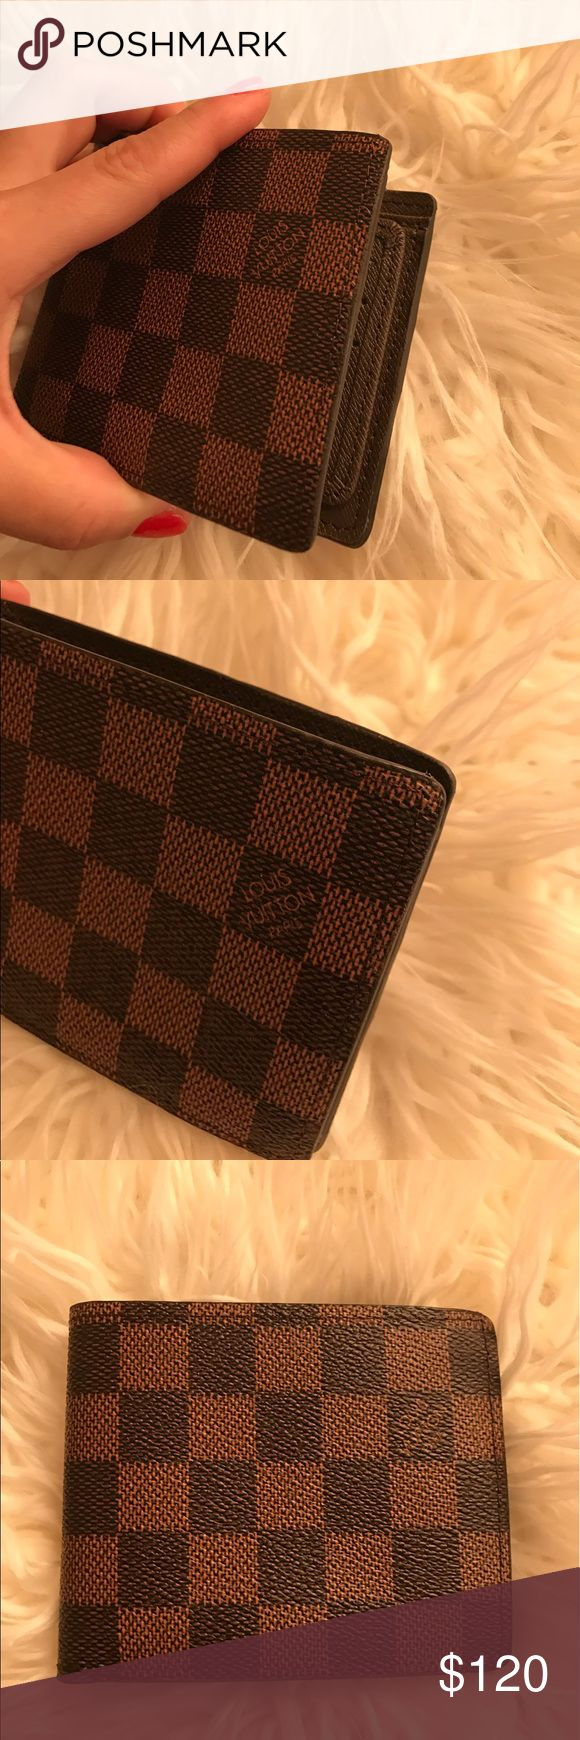 Louis Vuitton Saffiano leather bi-fold wallet A lot of space to hold all your cards and cash. Please consider the price, before asking questions. Louis Vuitton Bags Wallets